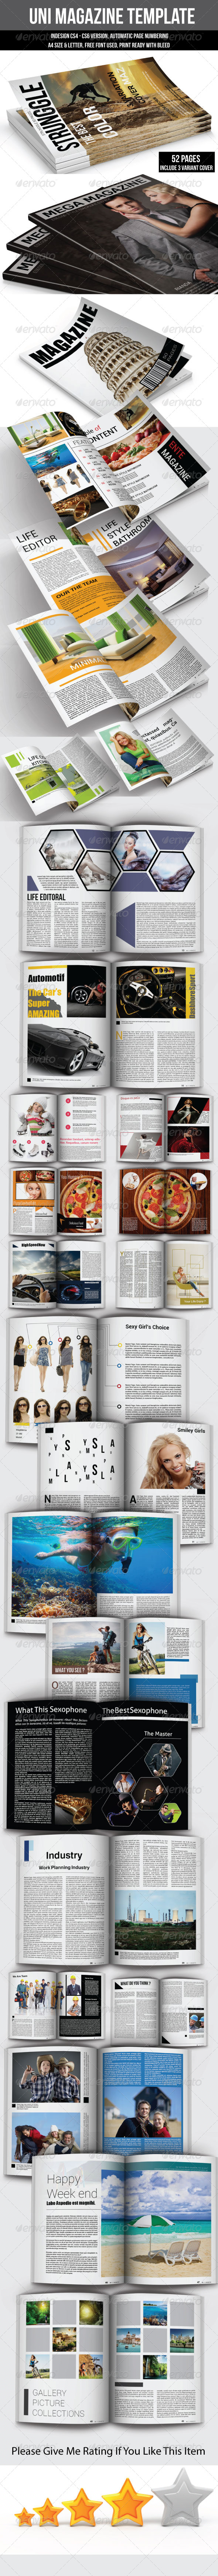 UNI Magazine Template